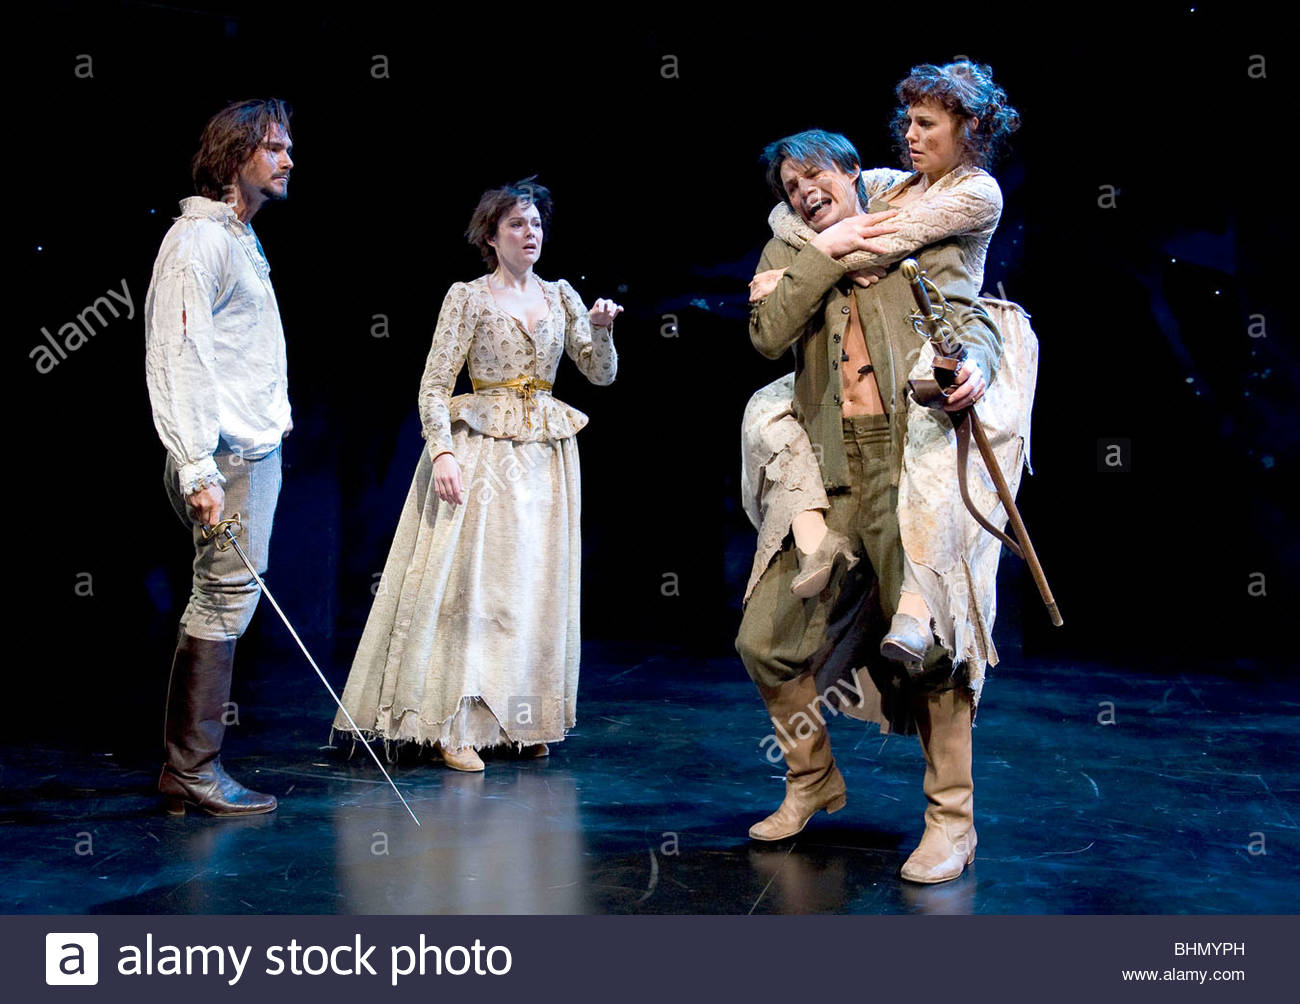 a midsummer night s dream acting review A midsummer night's dream - review 4 / 5 stars 4 out of 5 stars i've suppose i've seen more textually exploratory dreams, but grandage's production is sexy, swift and sure-footed, a constant delight to the eye and never lets us forget that this is a play about the magical capacity for change.